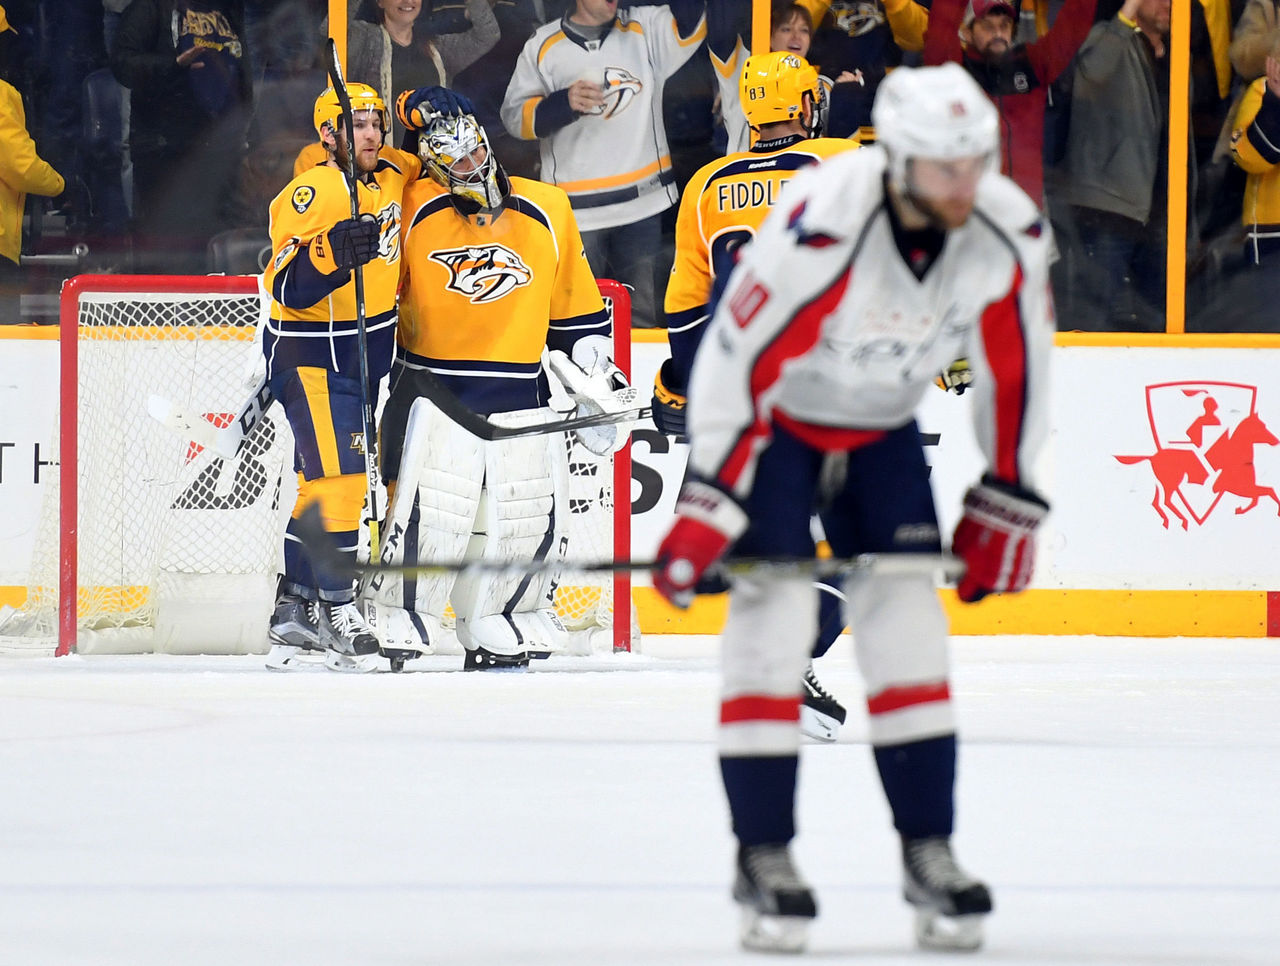 Cropped 2017 02 26t010616z 1836804431 nocid rtrmadp 3 nhl washington capitals at nashville predators